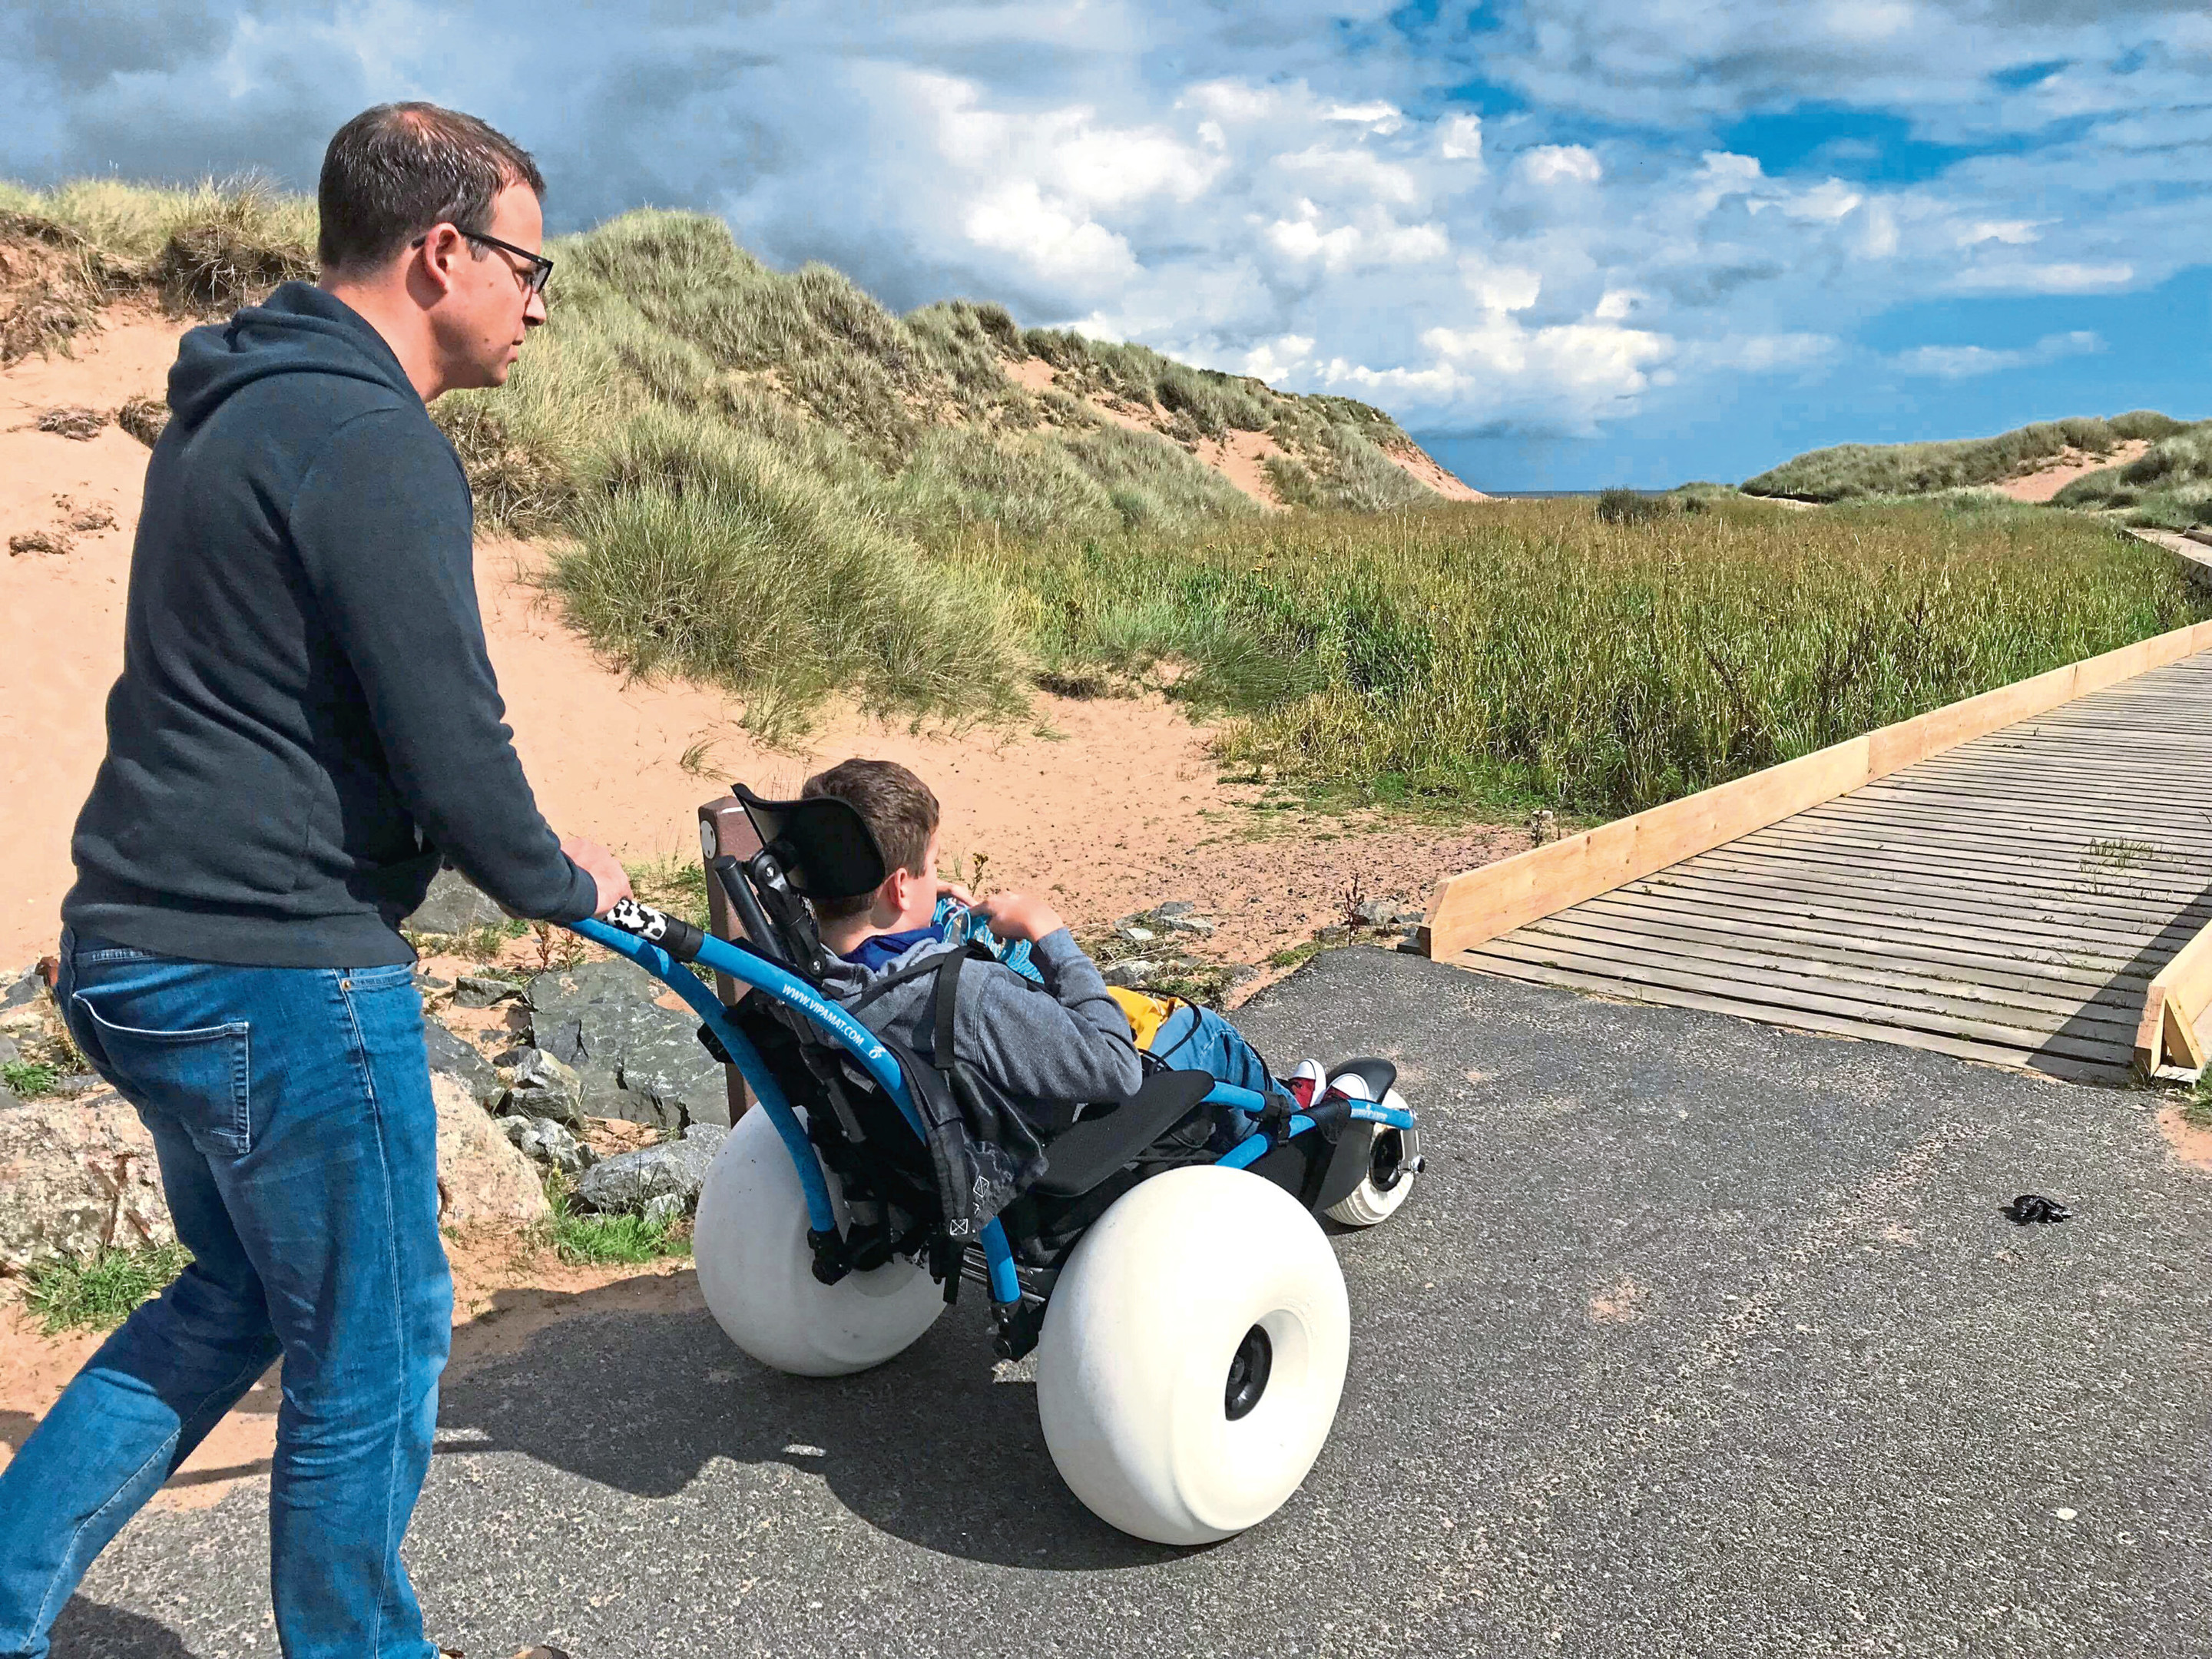 Ben Henry tries out the new Hippocampe wheelchair at Balmedie beach with father Gavin. Submitted